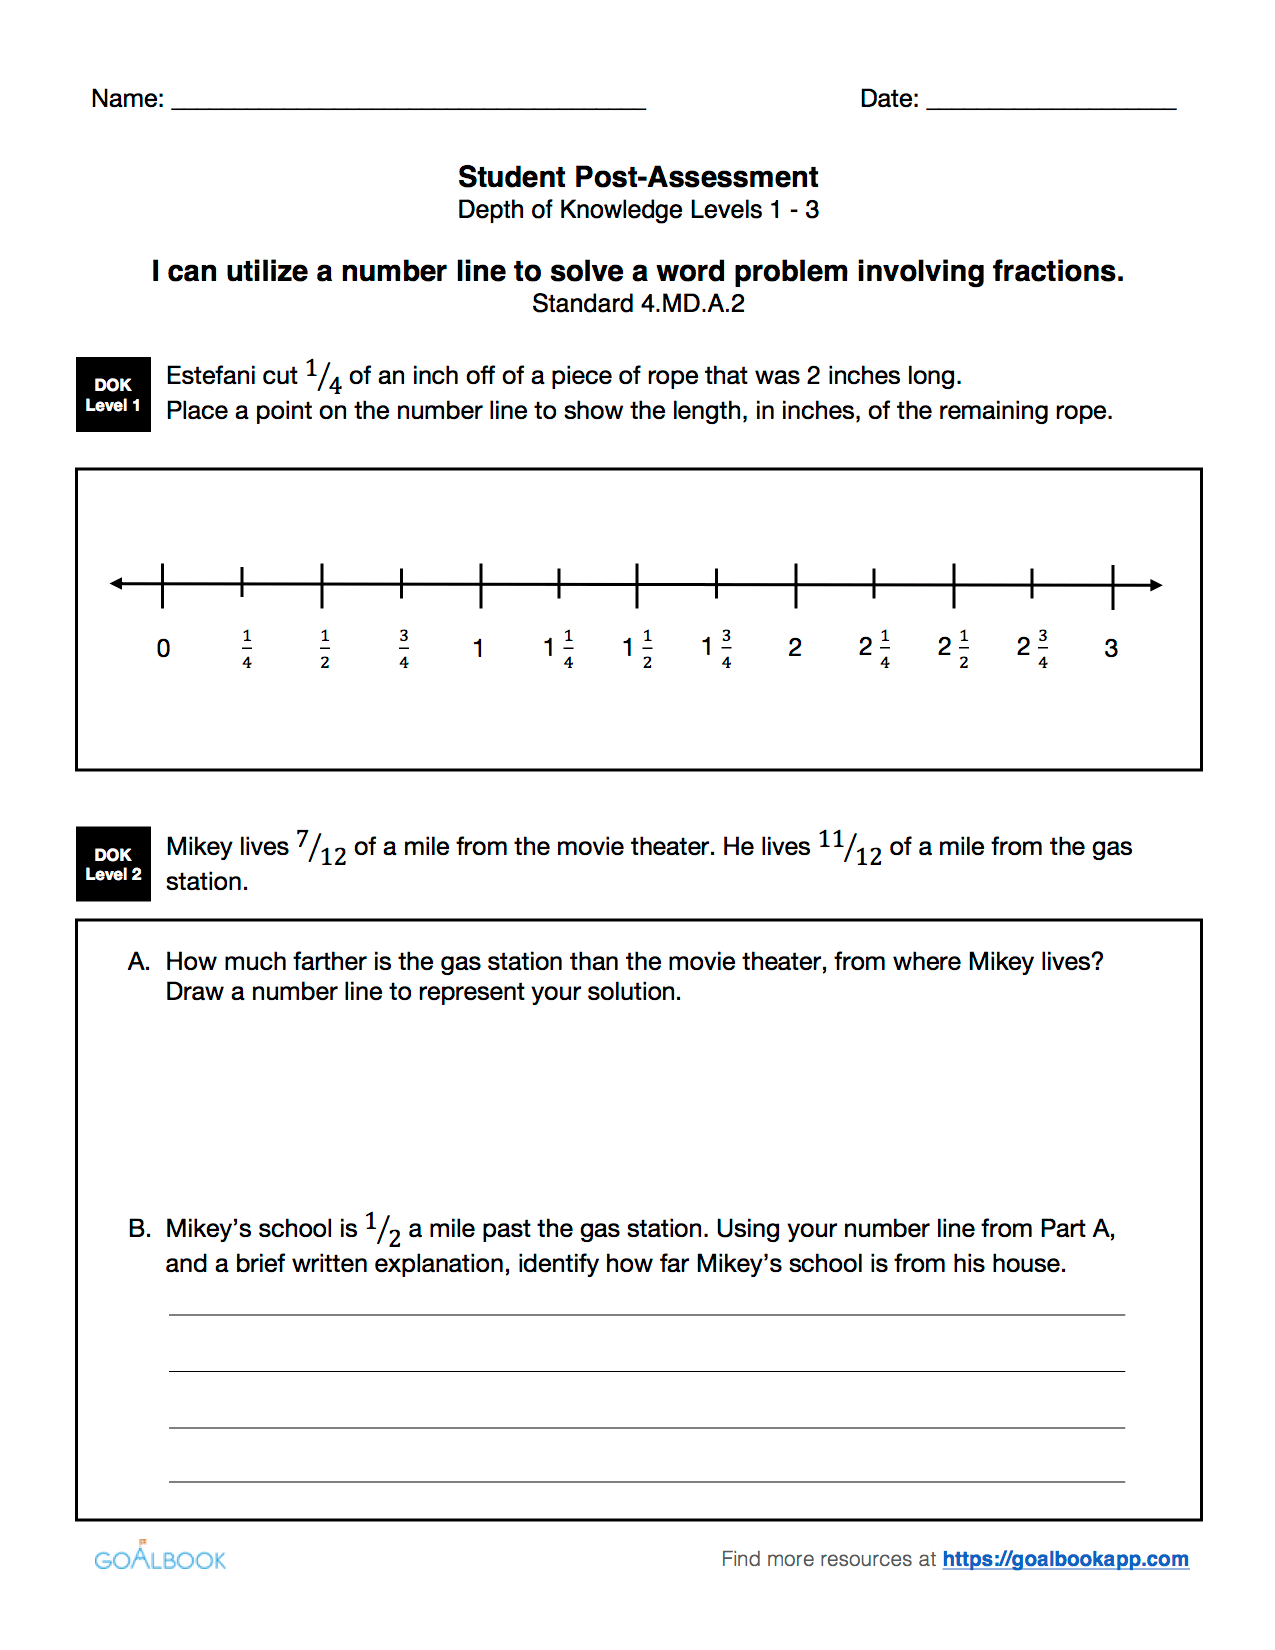 Quick Assessment Fraction Word Problems Using Number Lines